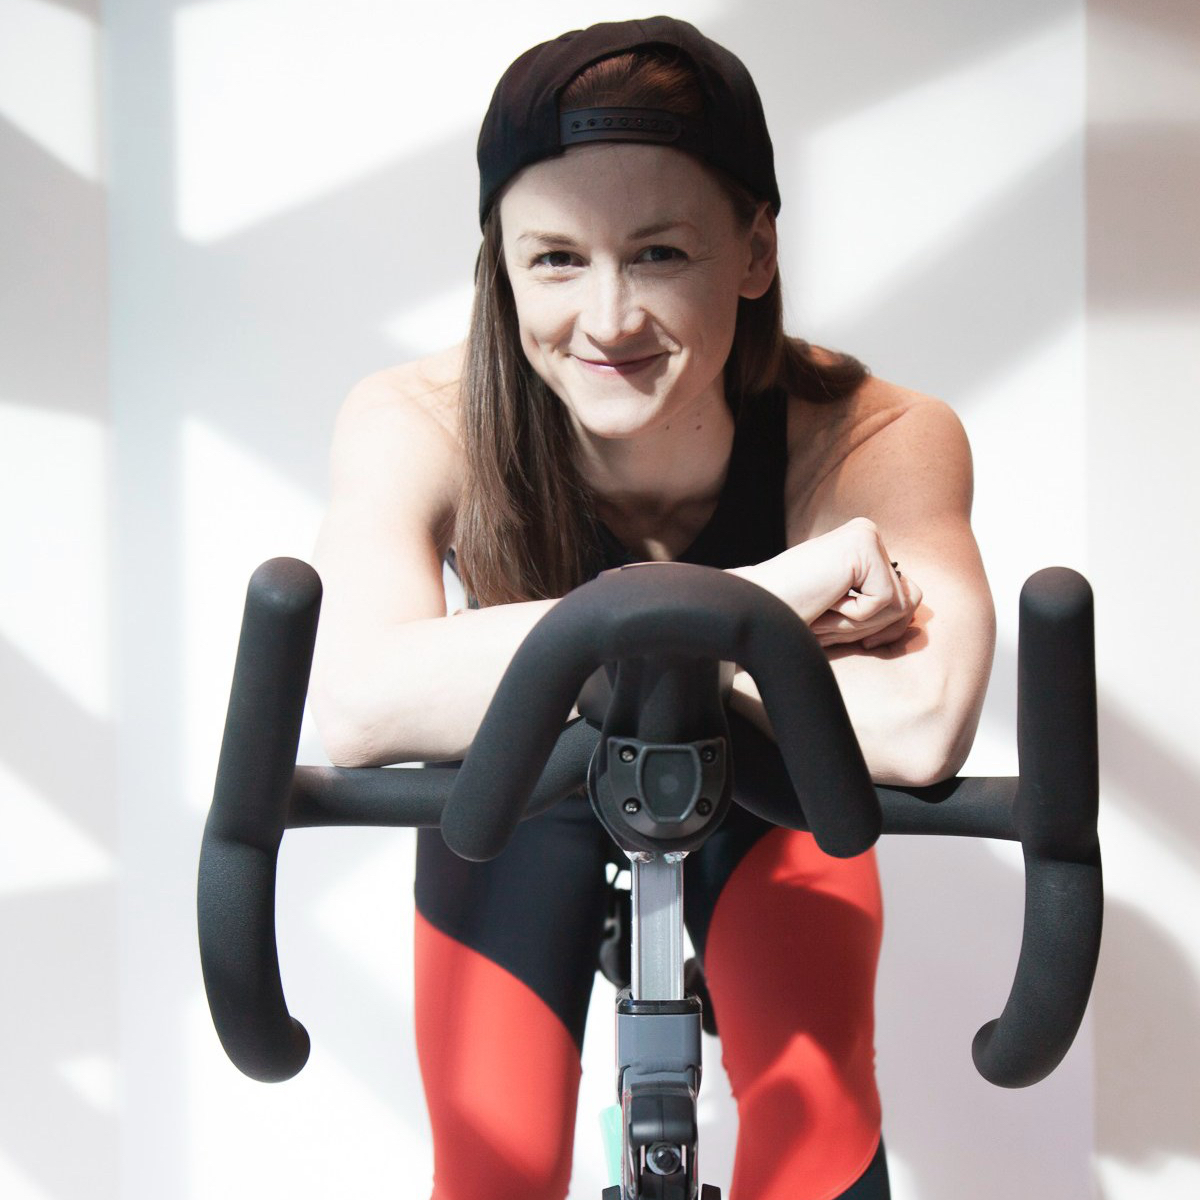 Find Out How Trainer, Erin Nelson Keeps a Healthy Balance!